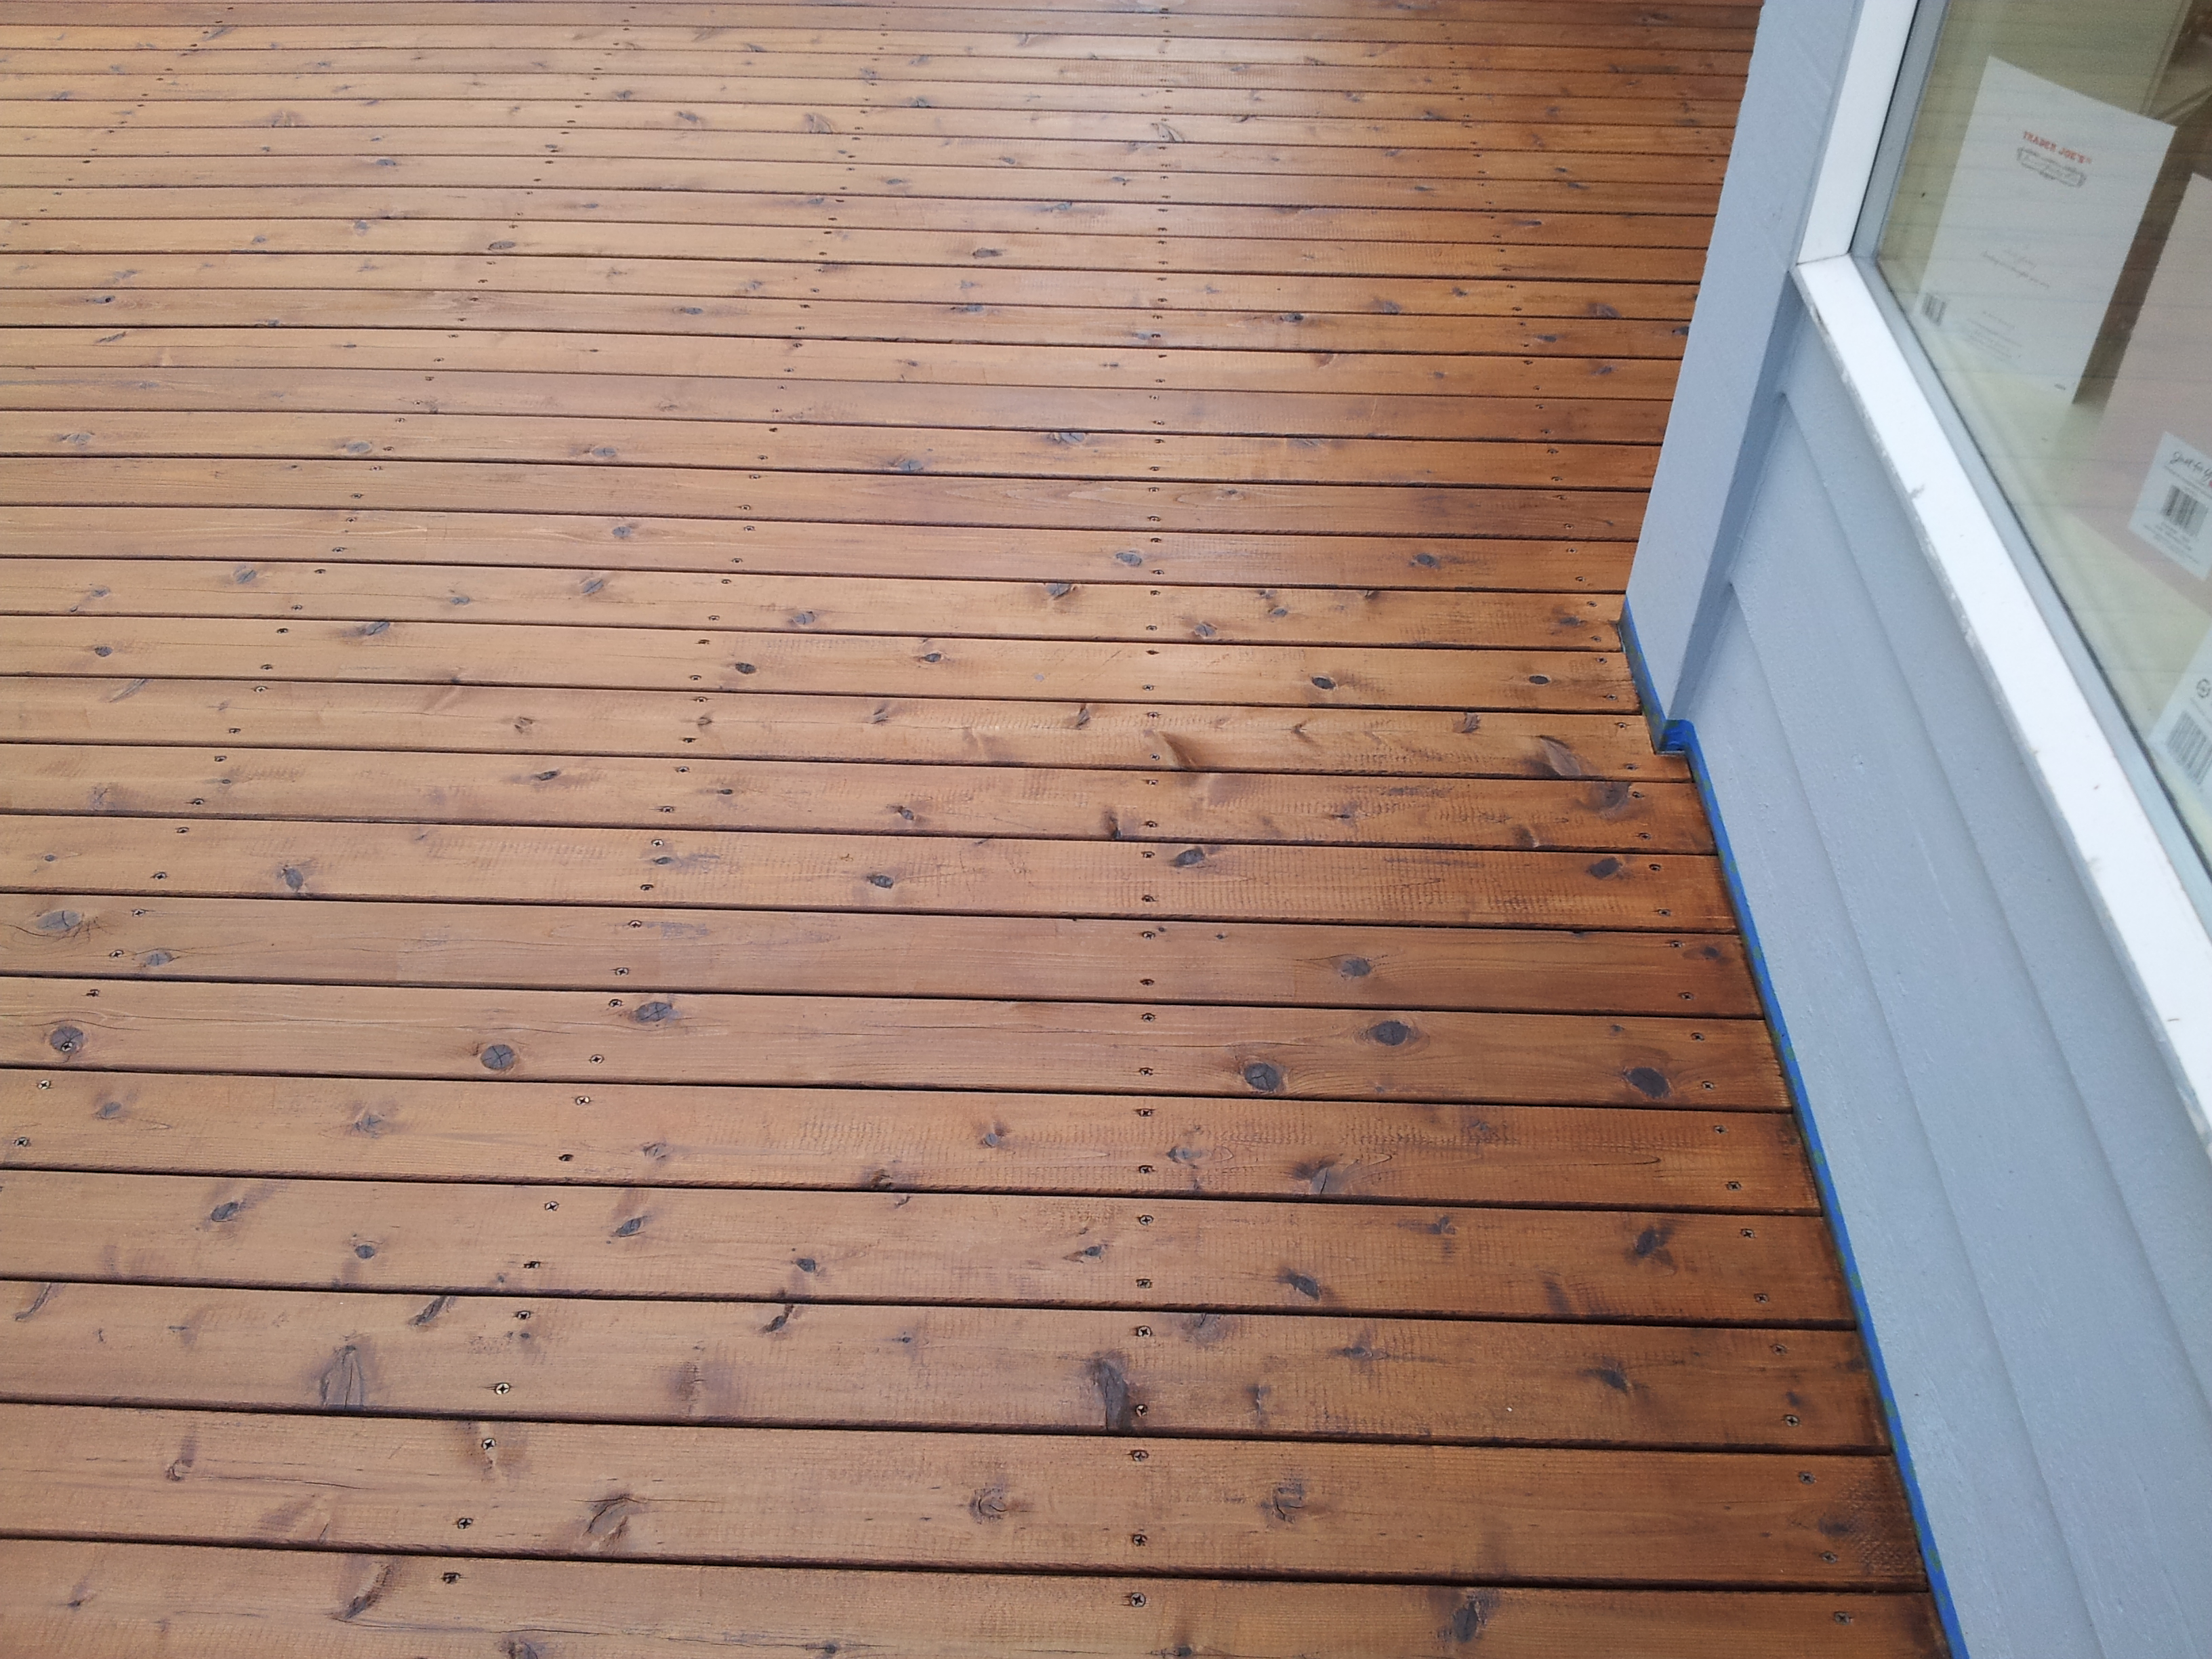 Oil Based Deck Stains 2018 Best Deck Stain Reviews Ratings throughout size 3264 X 2448